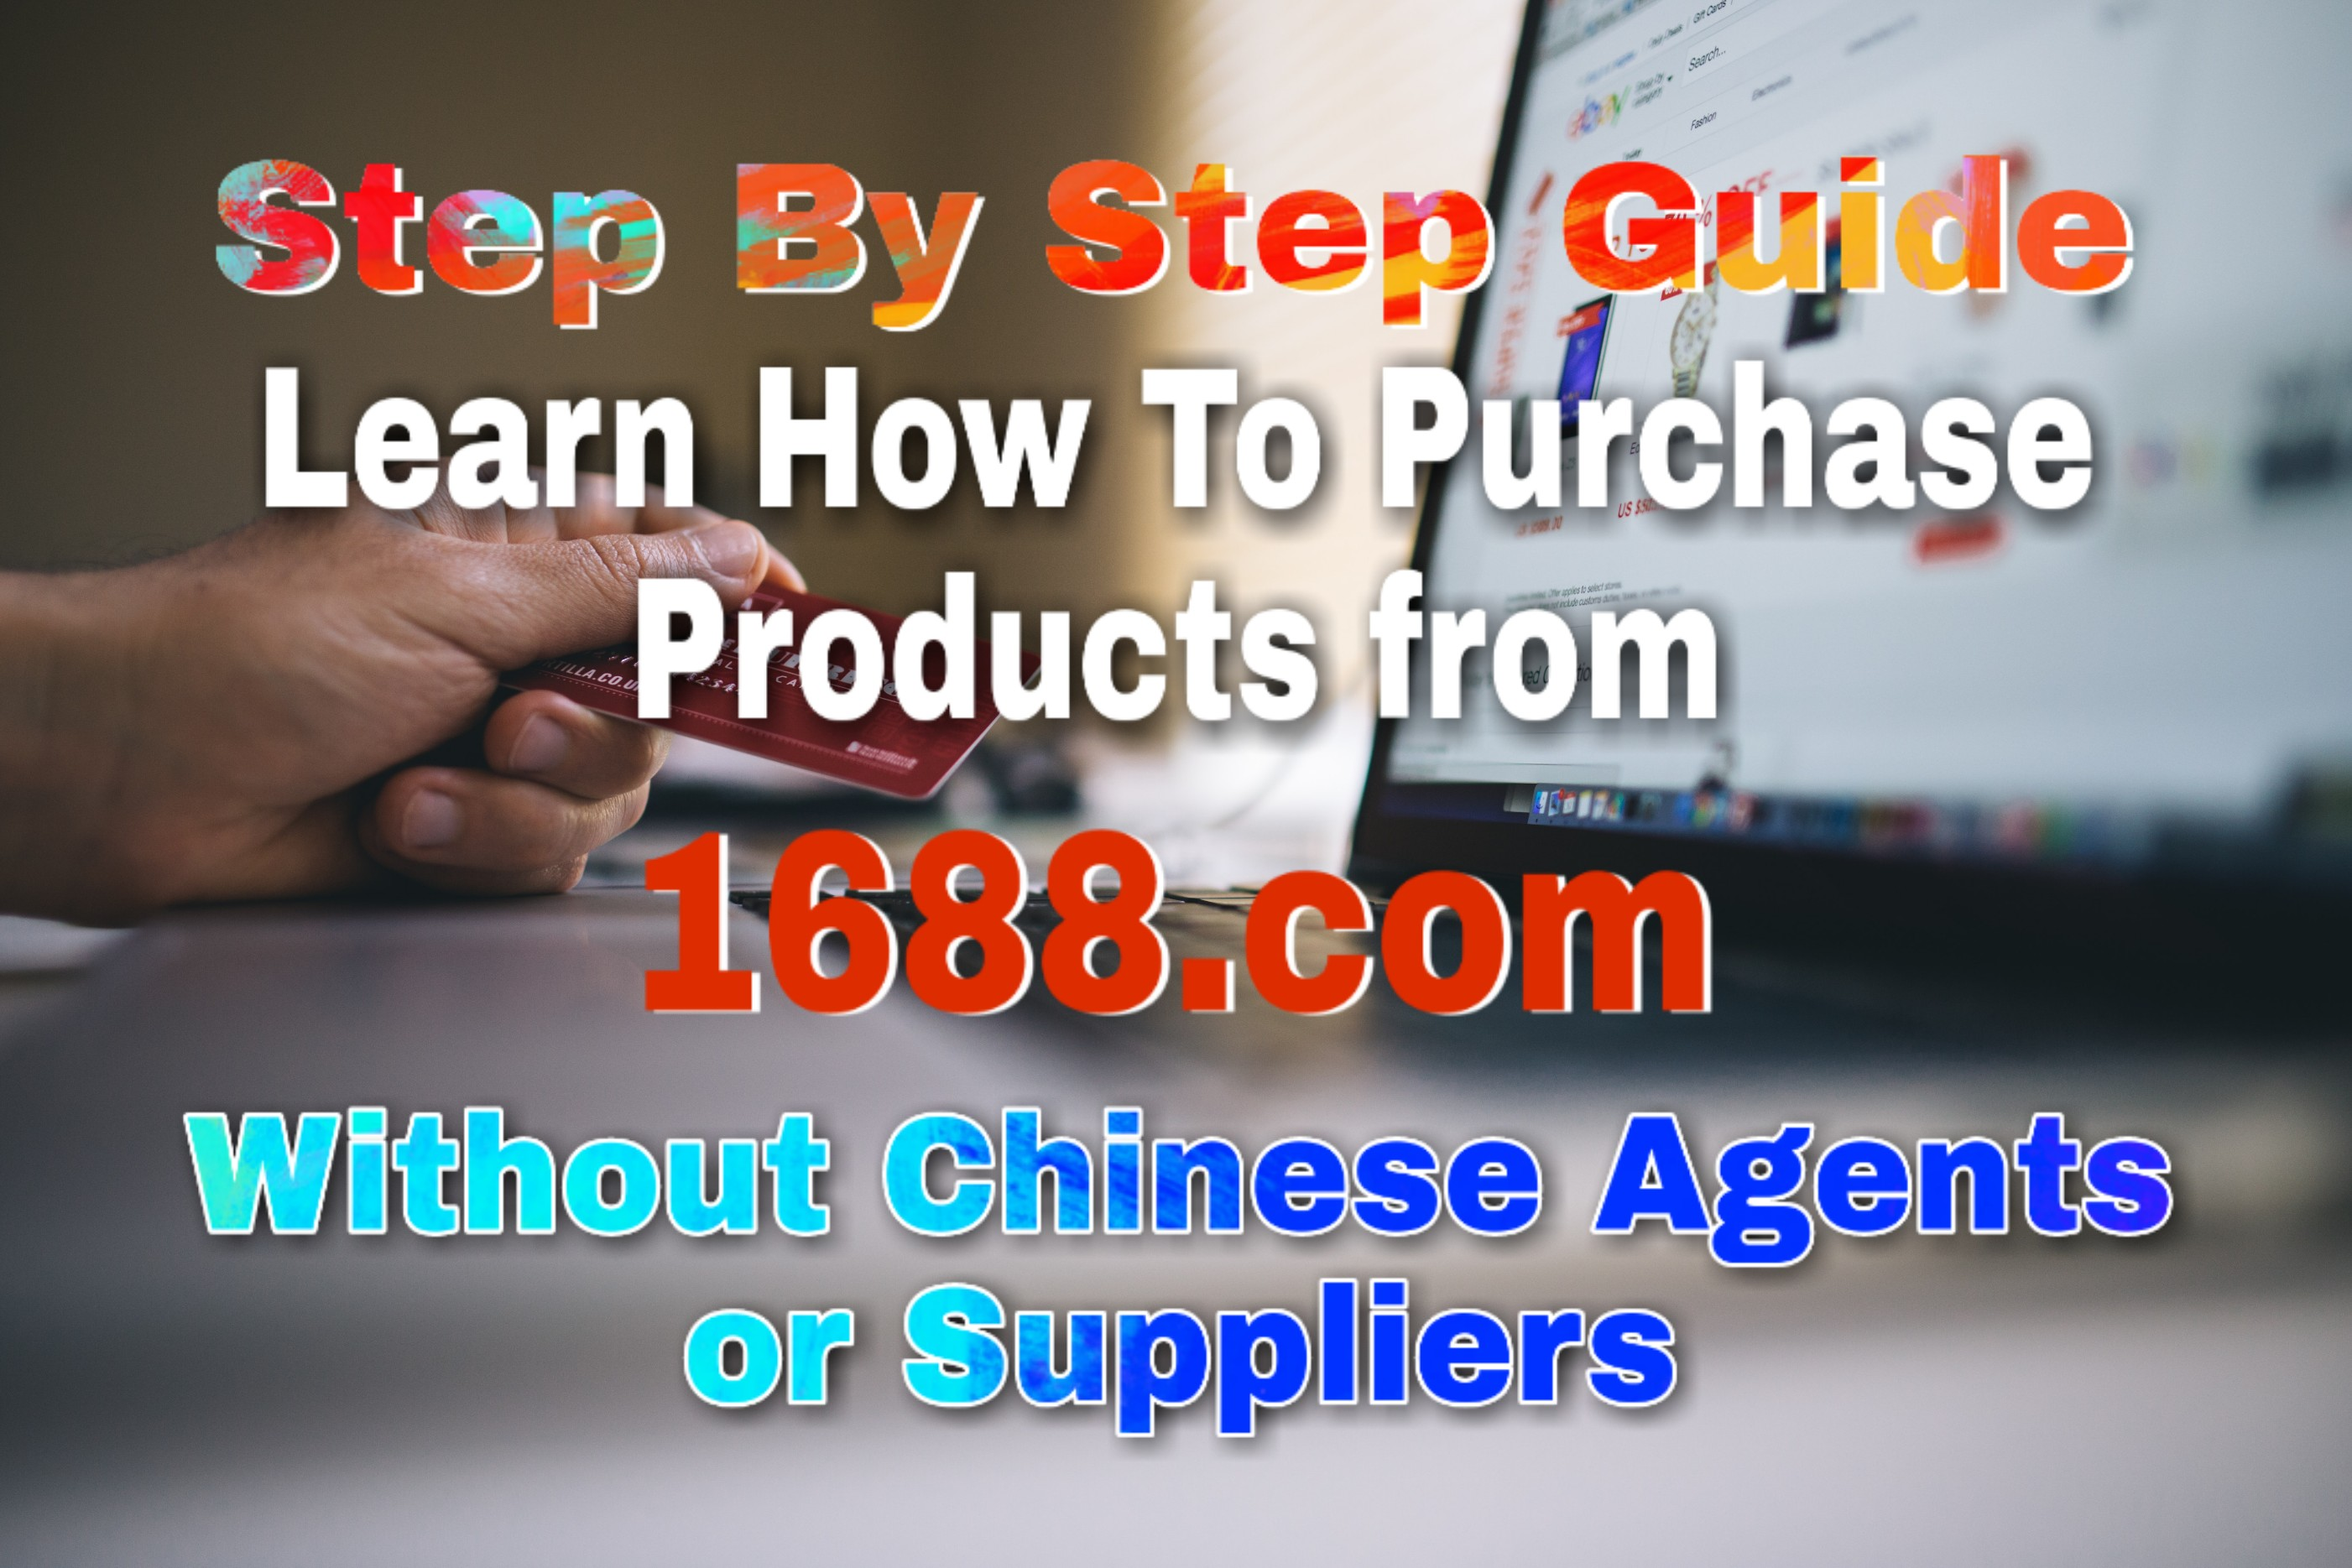 Guide To Import from 1688. com Without Chinese Agents/Suppliers - Step by Step PDF Guide